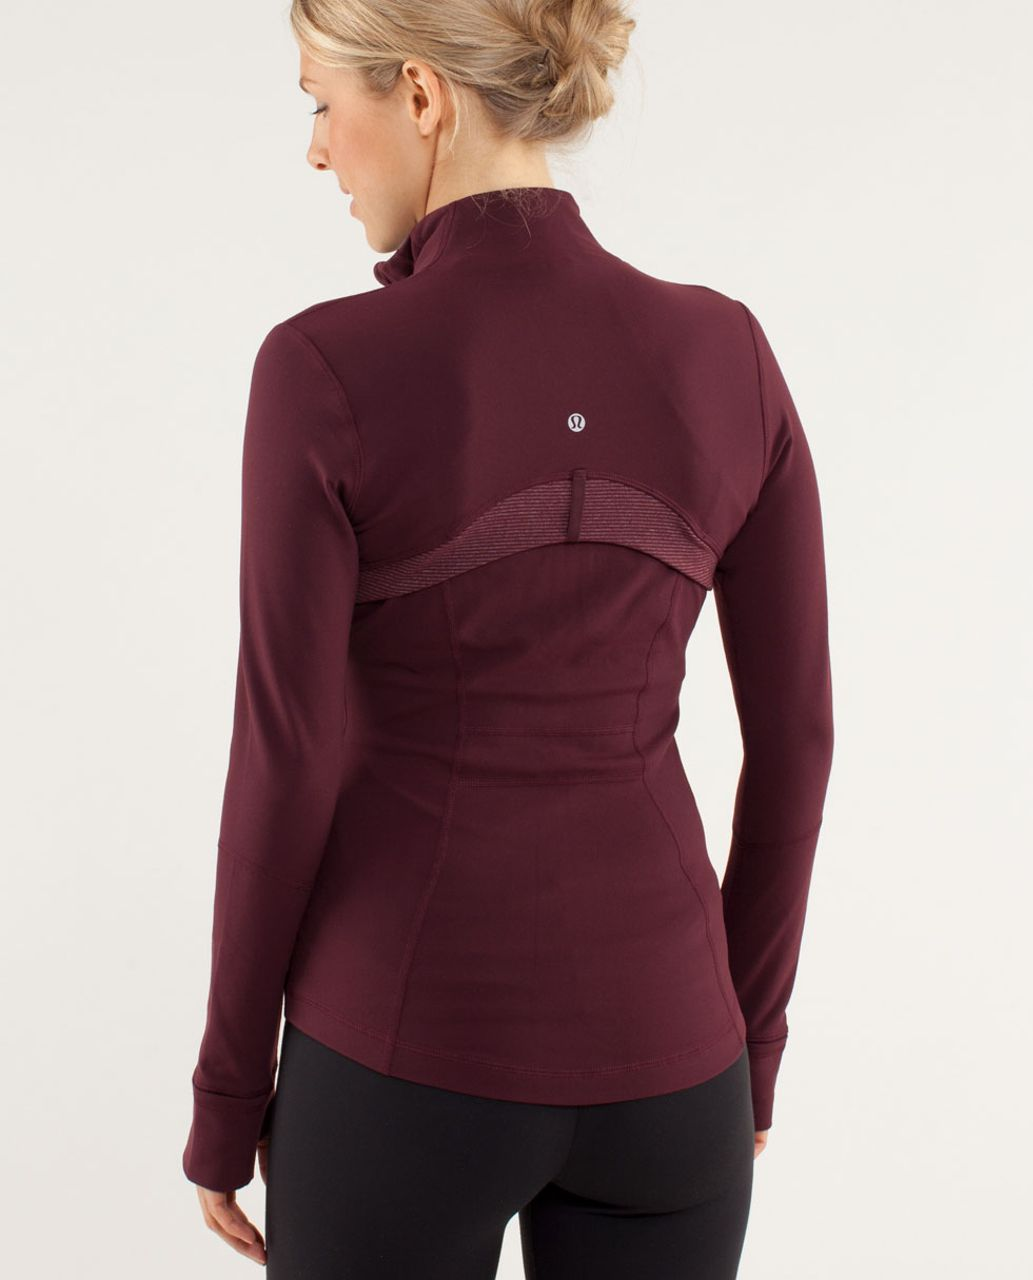 Lululemon Define Jacket - Bordeaux Drama / Tonka Stripe Bordeaux Drama / Heathered Bordeaux Drama